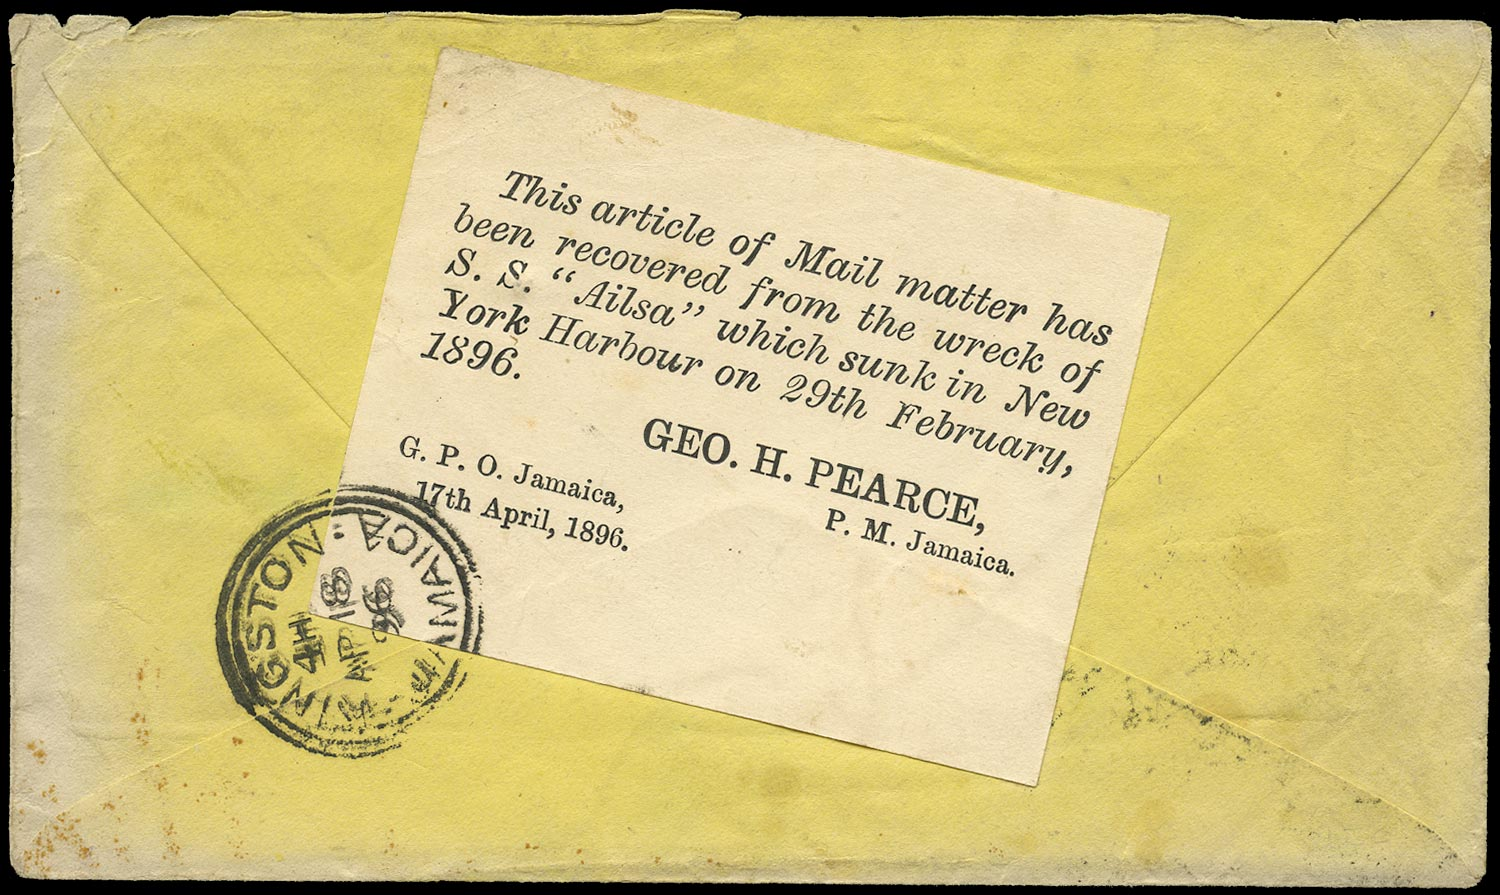 JAMAICA 1896 Cover from New York to Kingston recovered from the wreck of the 'Ailsa'